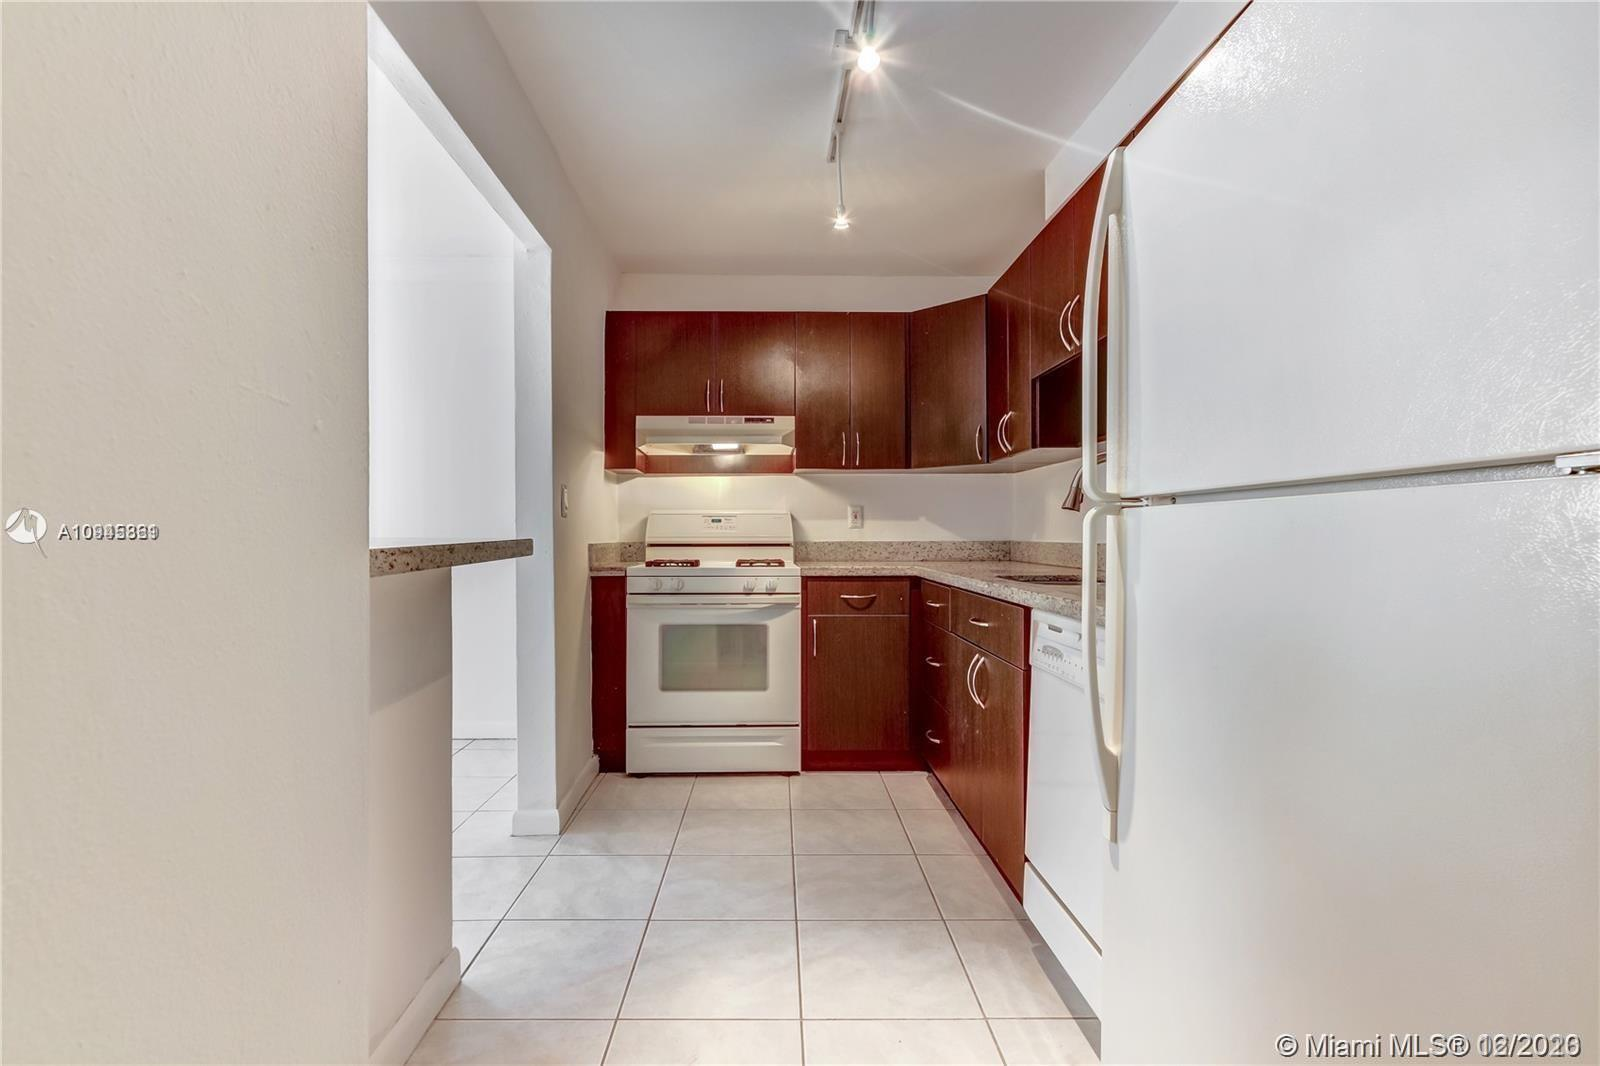 6900 N Kendall Dr # A109, Pinecrest, Florida 33156, 1 Bedroom Bedrooms, ,2 BathroomsBathrooms,Residential,For Sale,6900 N Kendall Dr # A109,A10945861